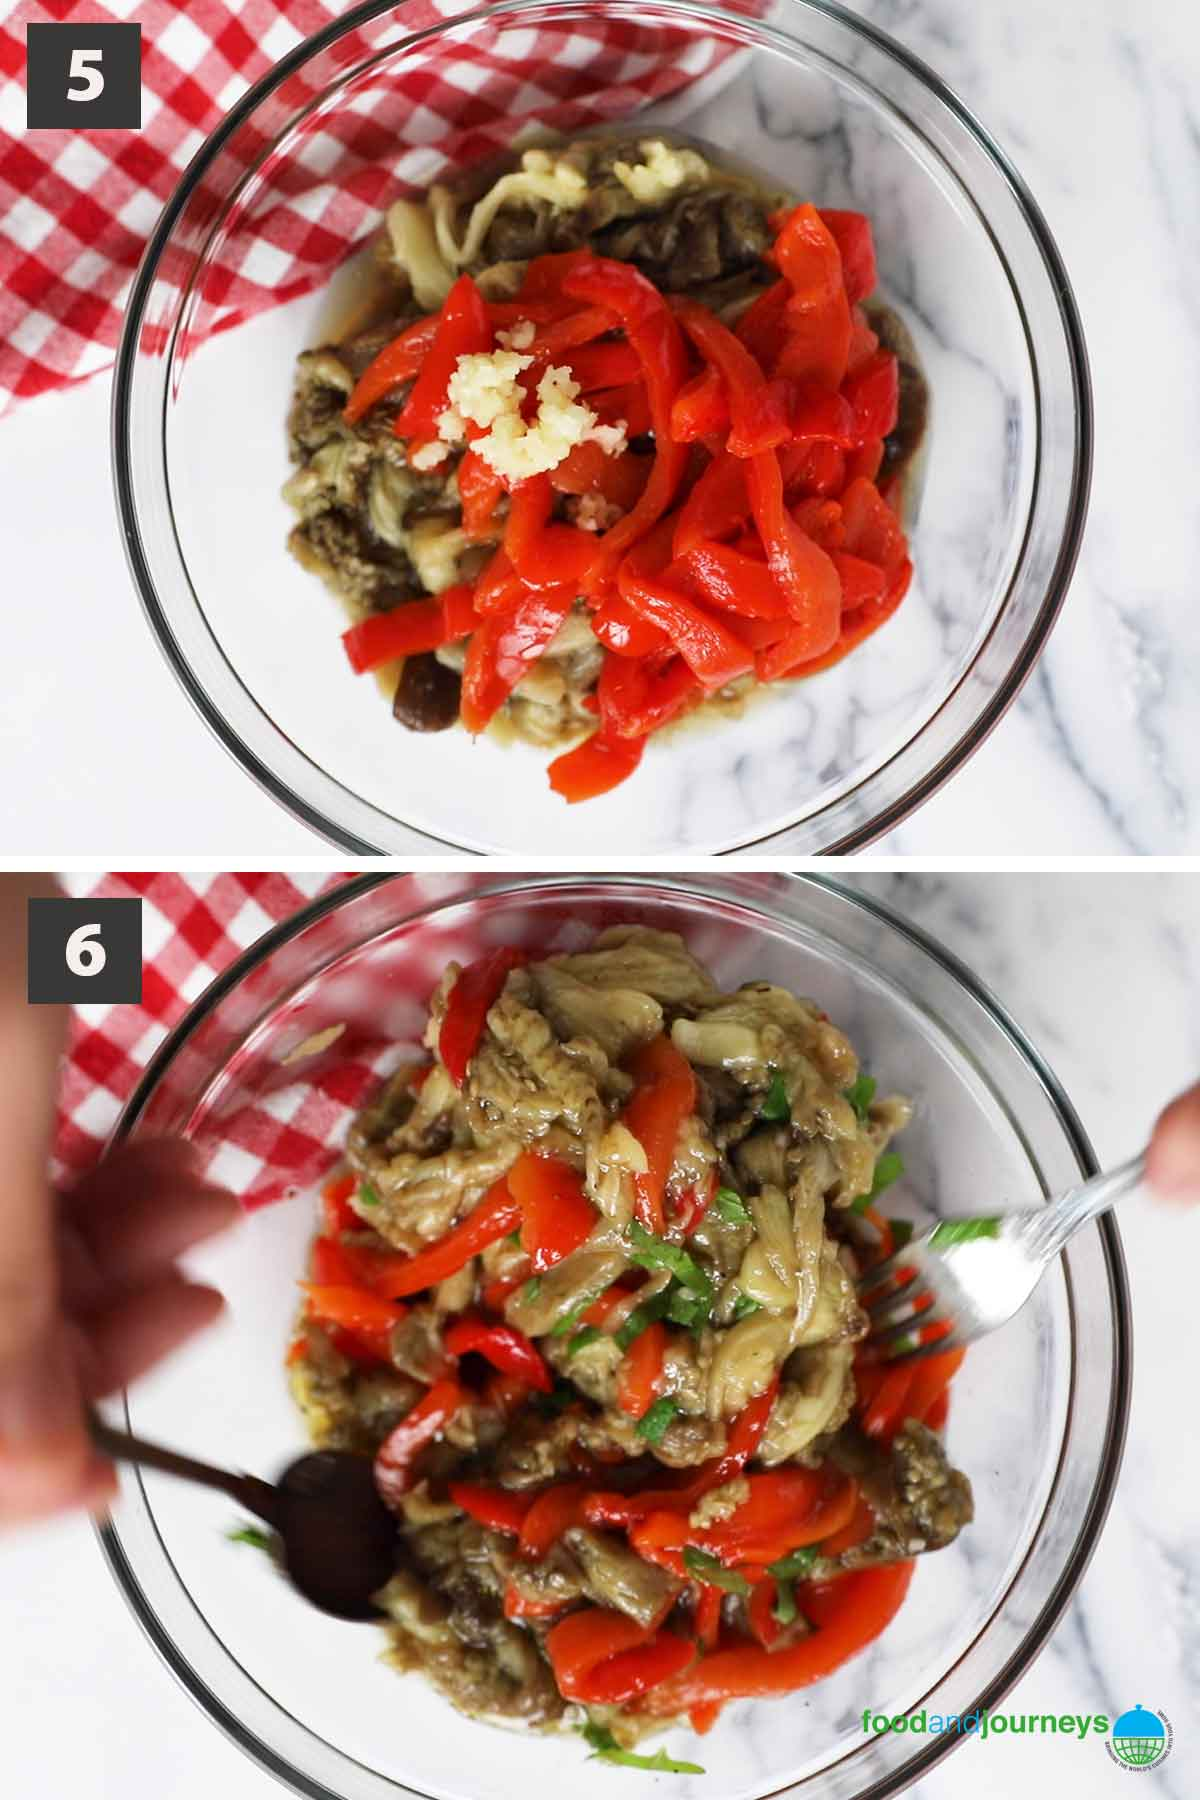 Last step of a collage of images showing the step by step process of making marinated eggplant and peppers.